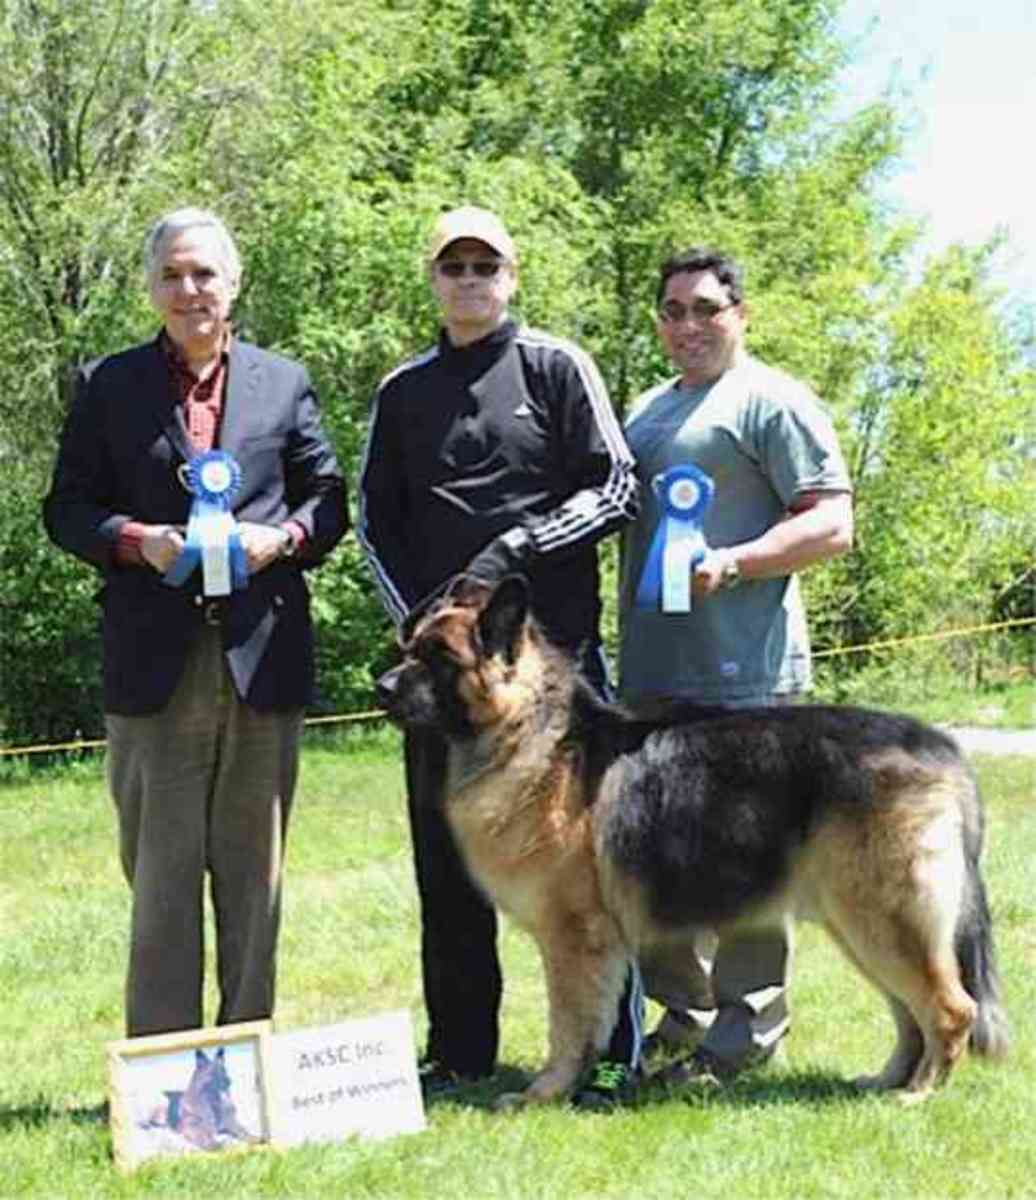 Members from American king Shepherd Club